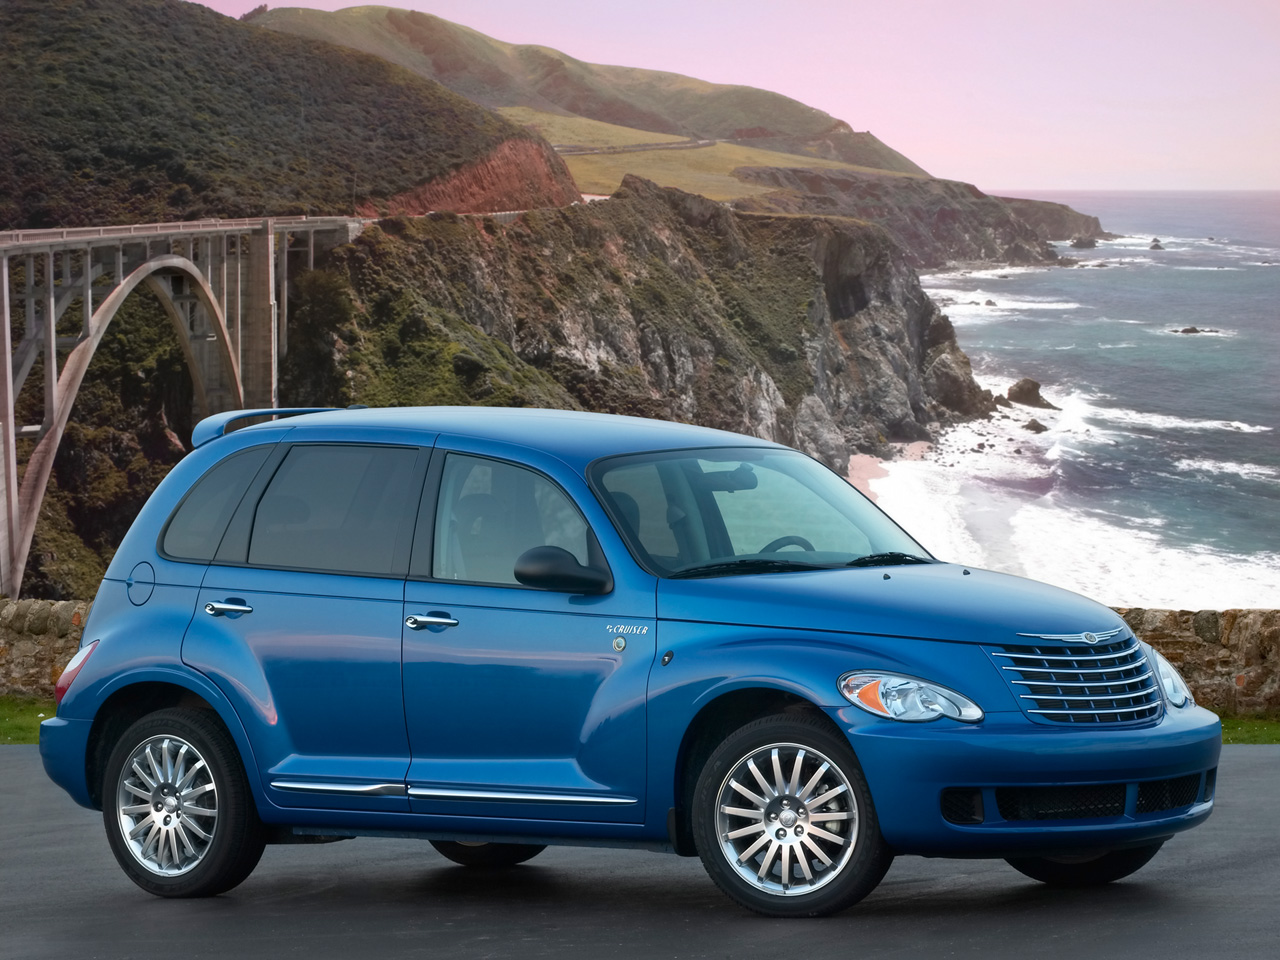 2007 Chrysler Pt Cruiser #3